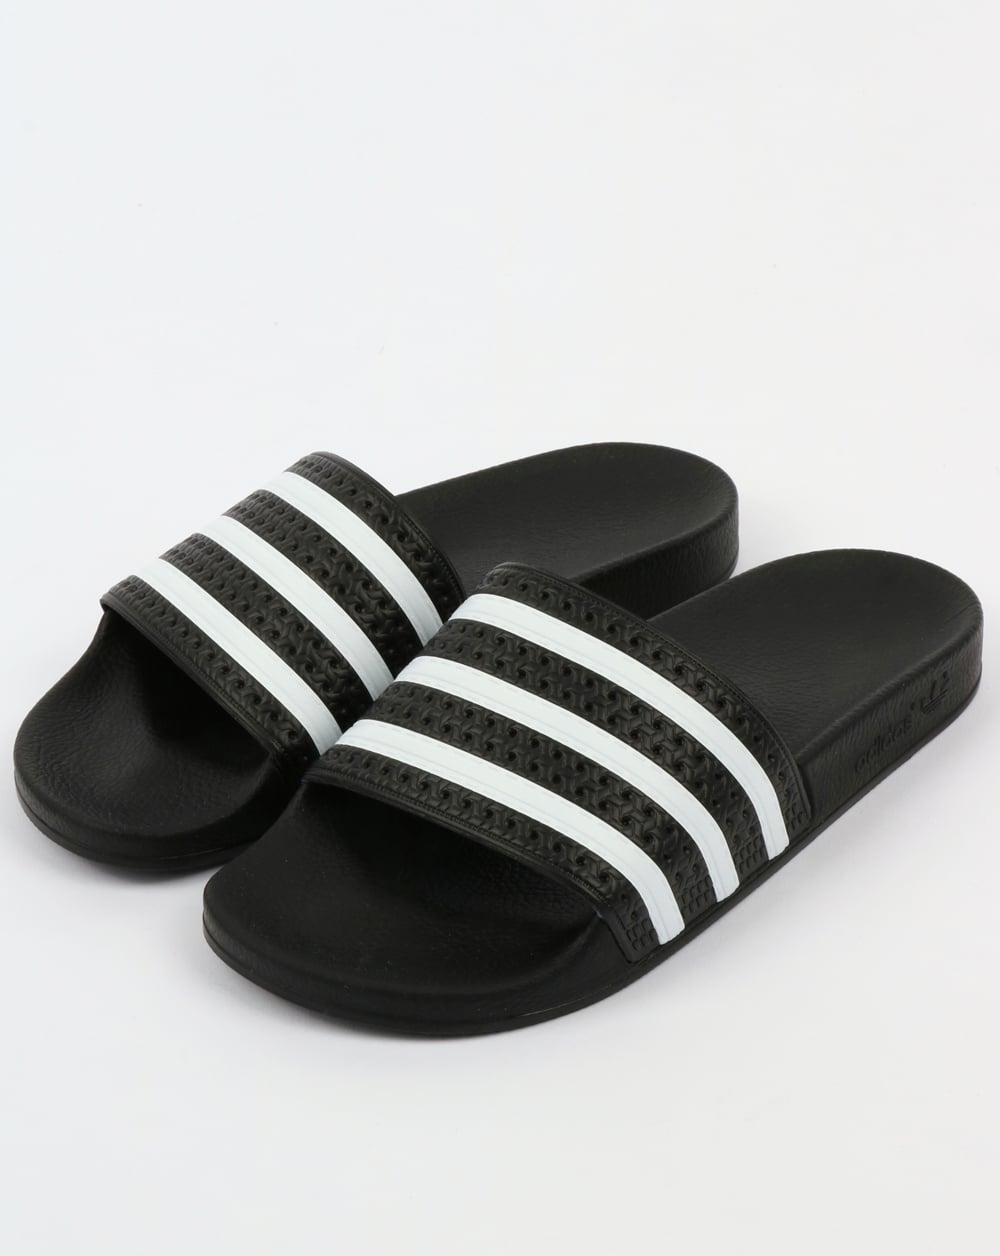 Adidas Adilette Sliders Black White Sandals Pool Mens